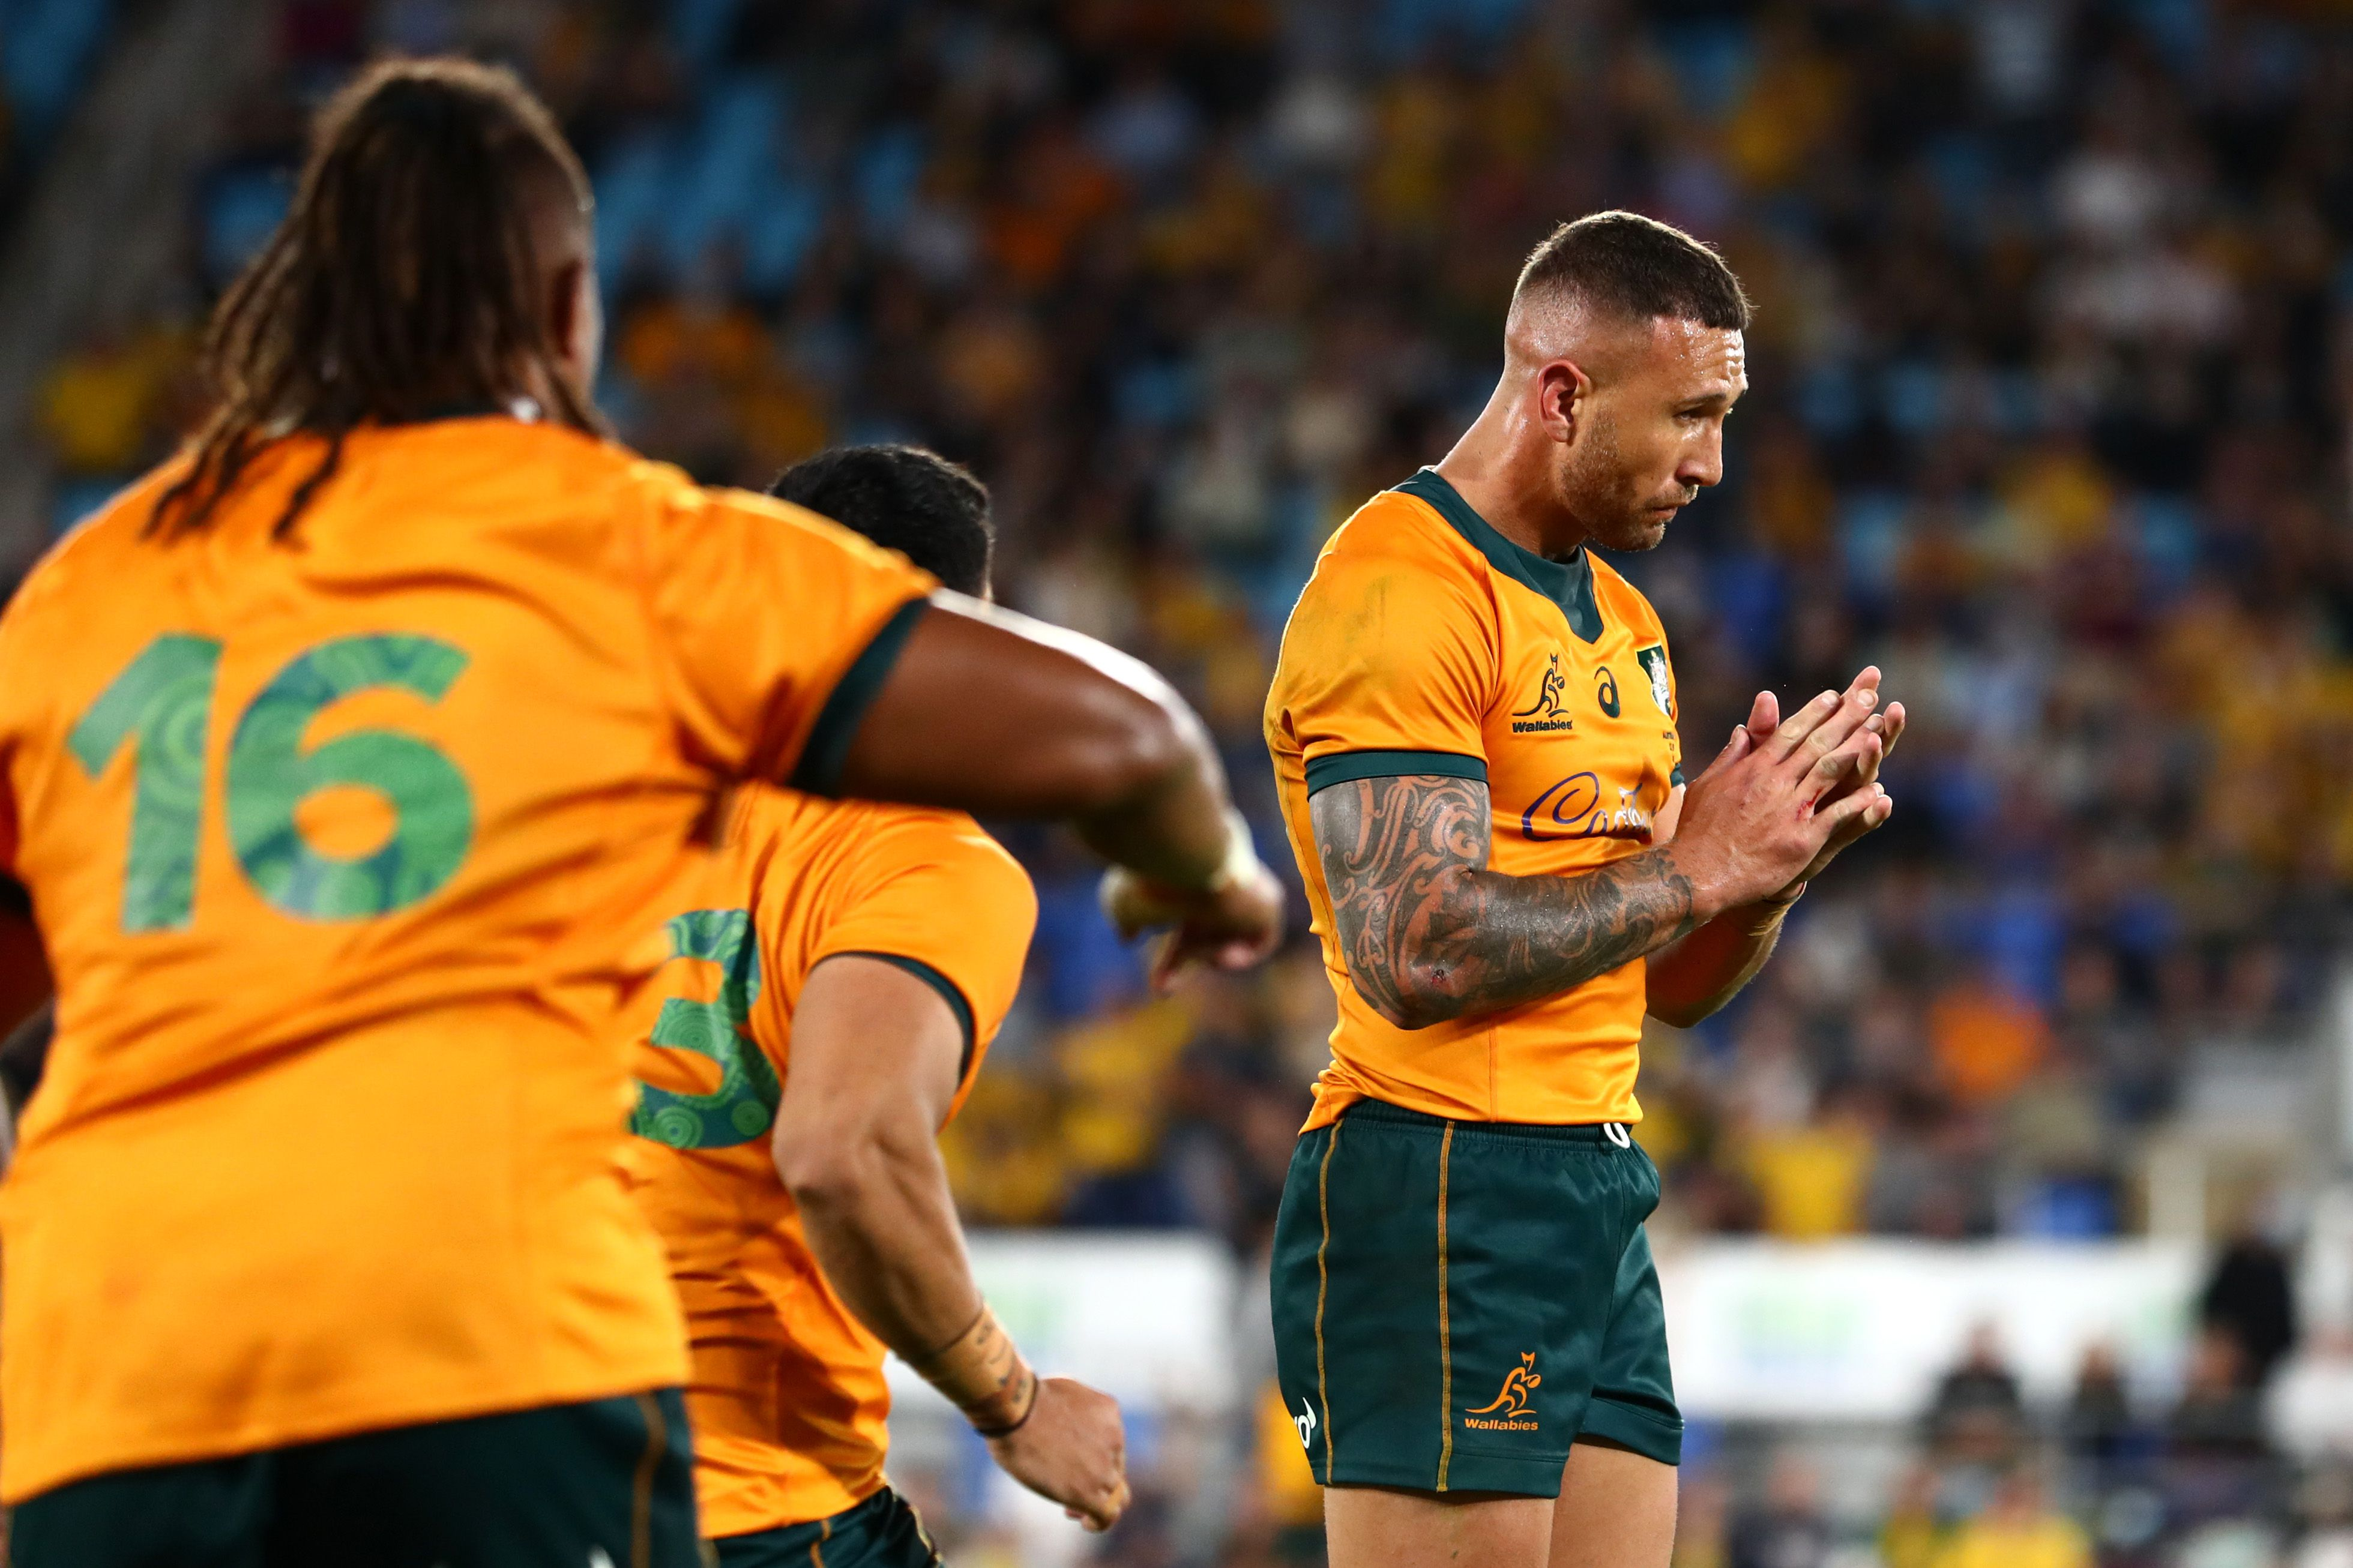 Rugby Heaven: The returns of Quade Cooper and Samu Kerevi have created welcome Wallabies selection headaches